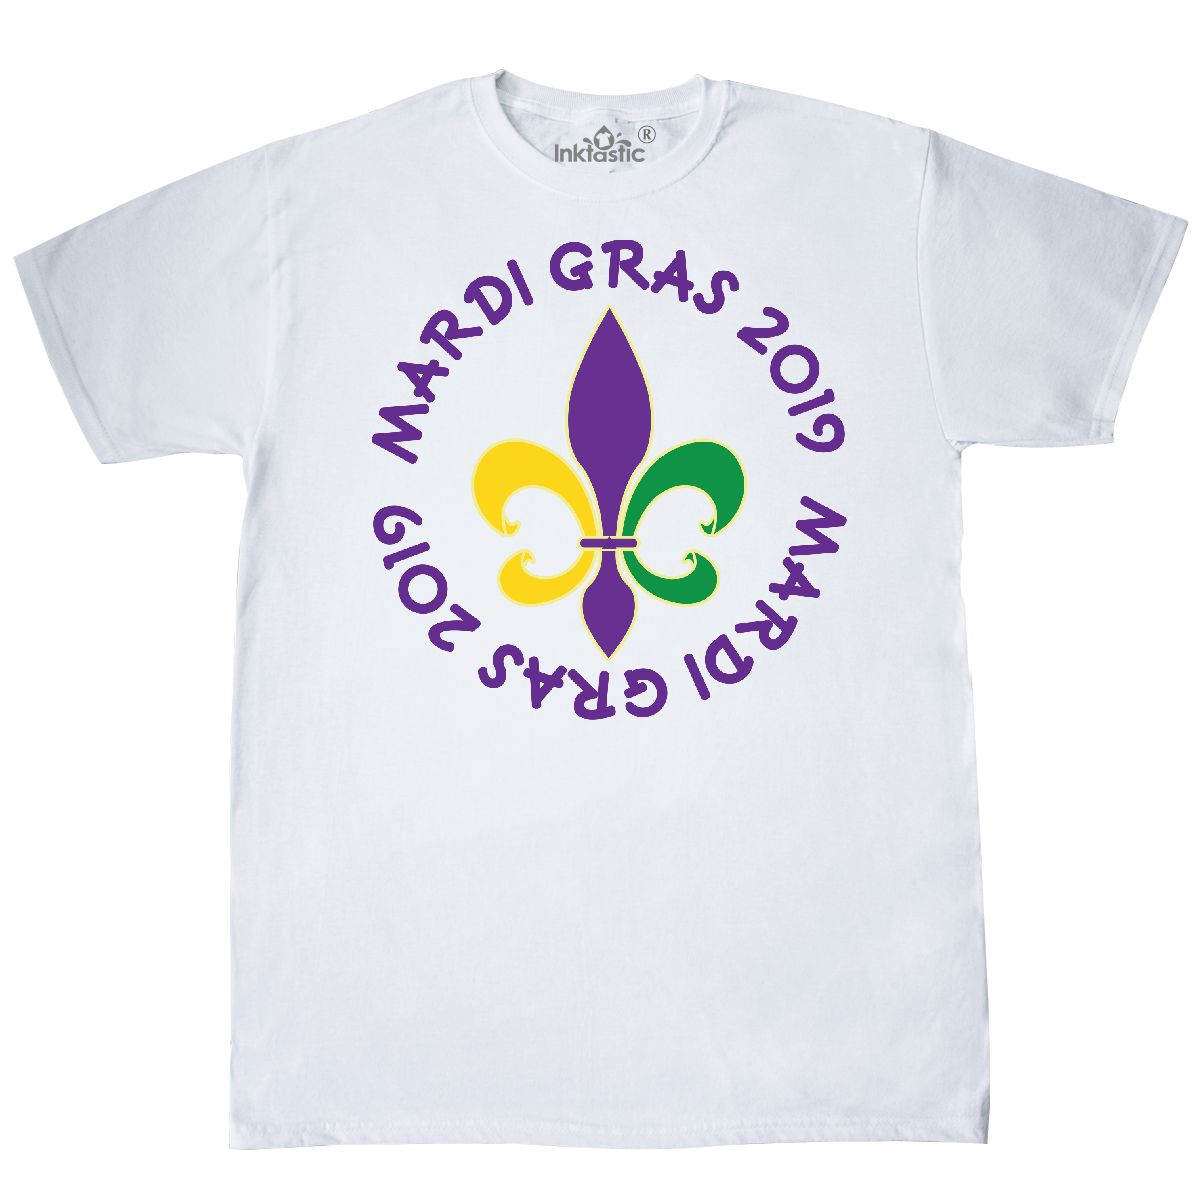 Inktastic 2019 Mardi Gras Holiday Crown T-Shirt Parade Party Fun Celebration New